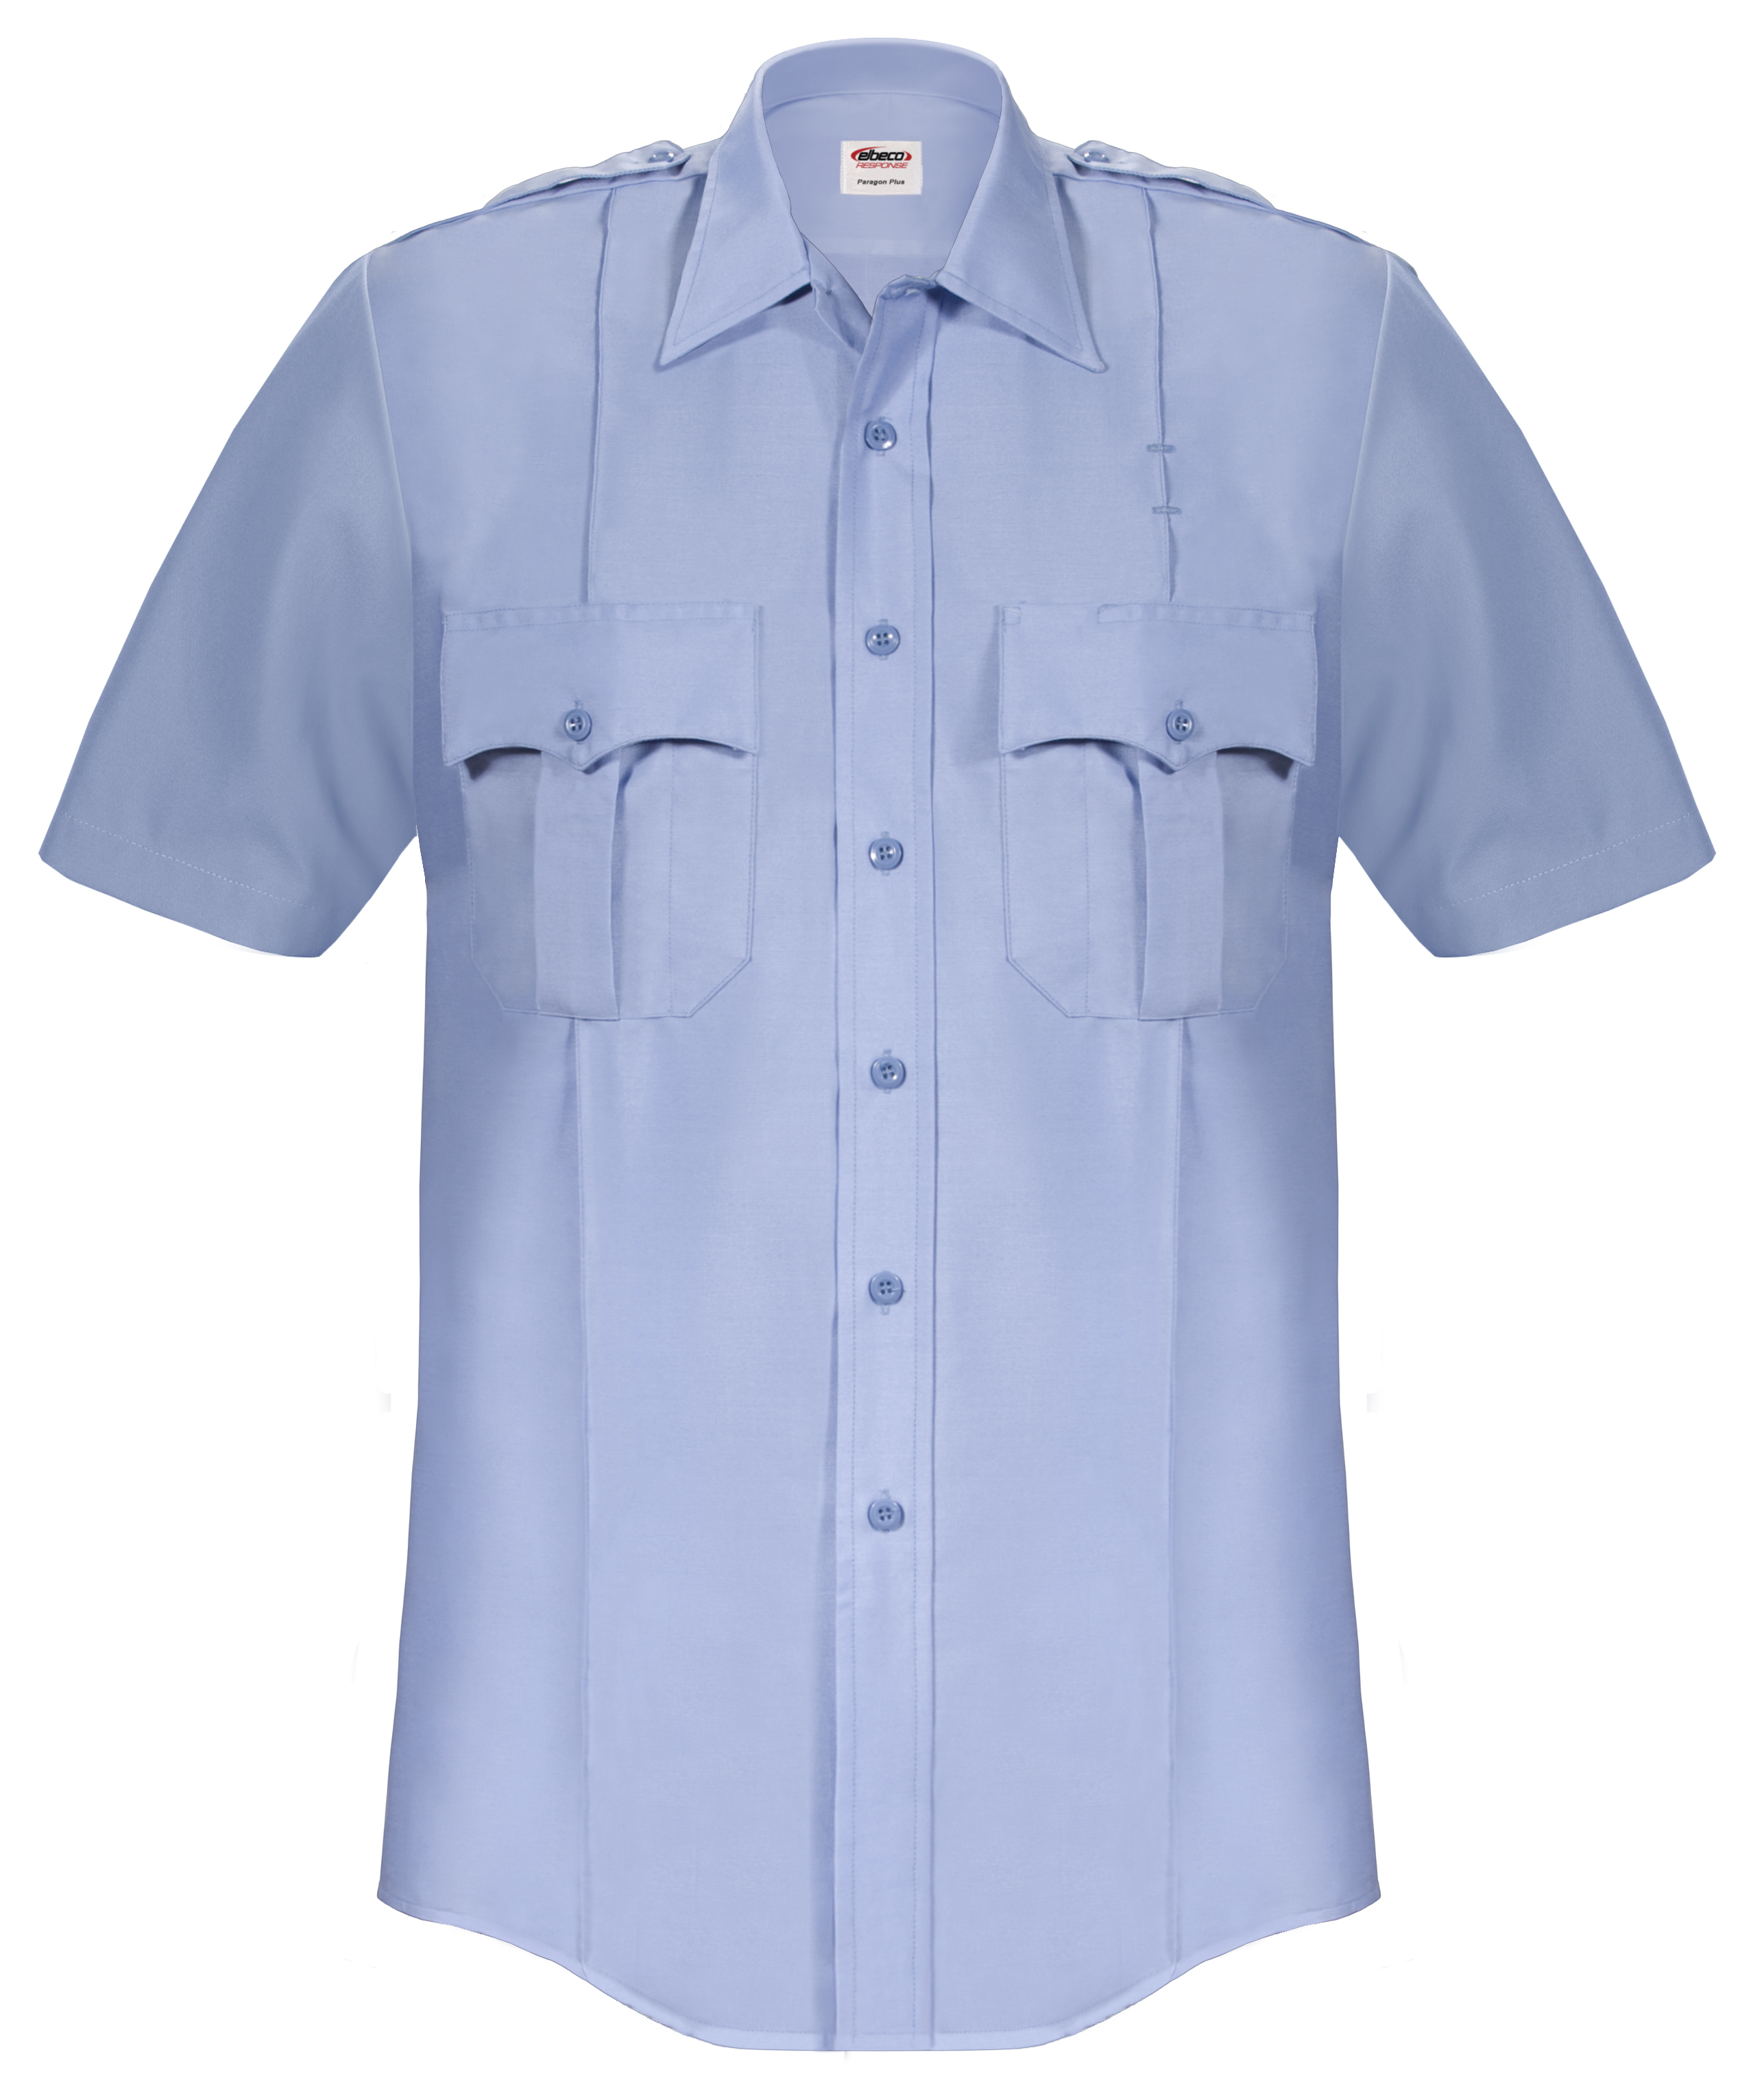 Elbeco Paragon Plus Short Sleeve Shirt - Light Blue